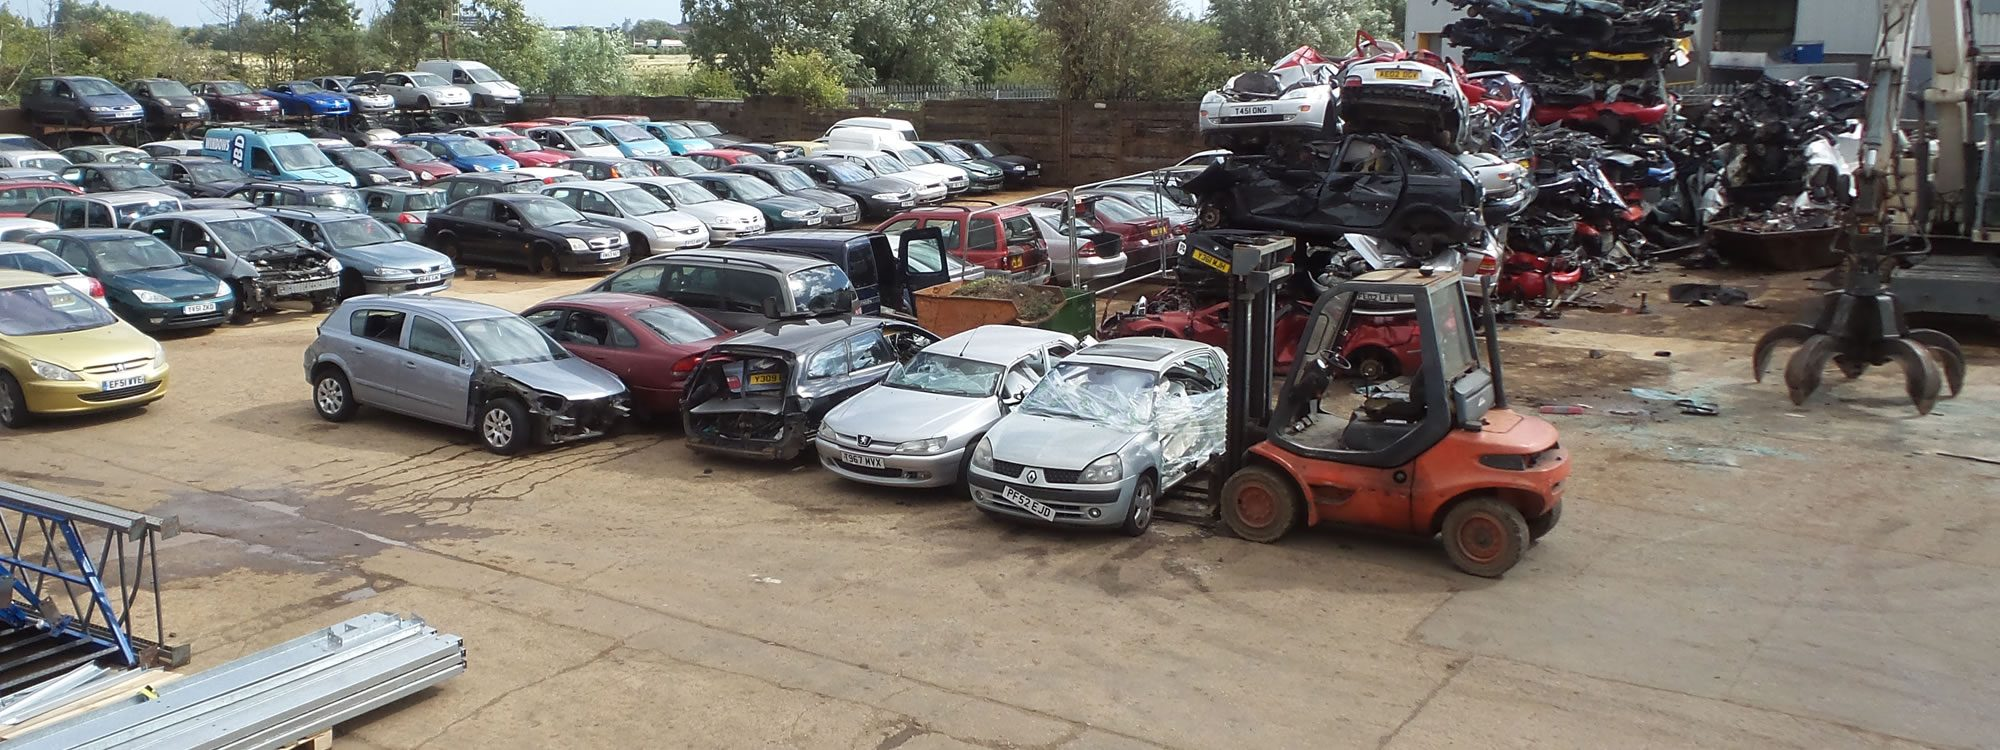 Have a scrap car? - Vehicle transport and recovery across Cornwall ...